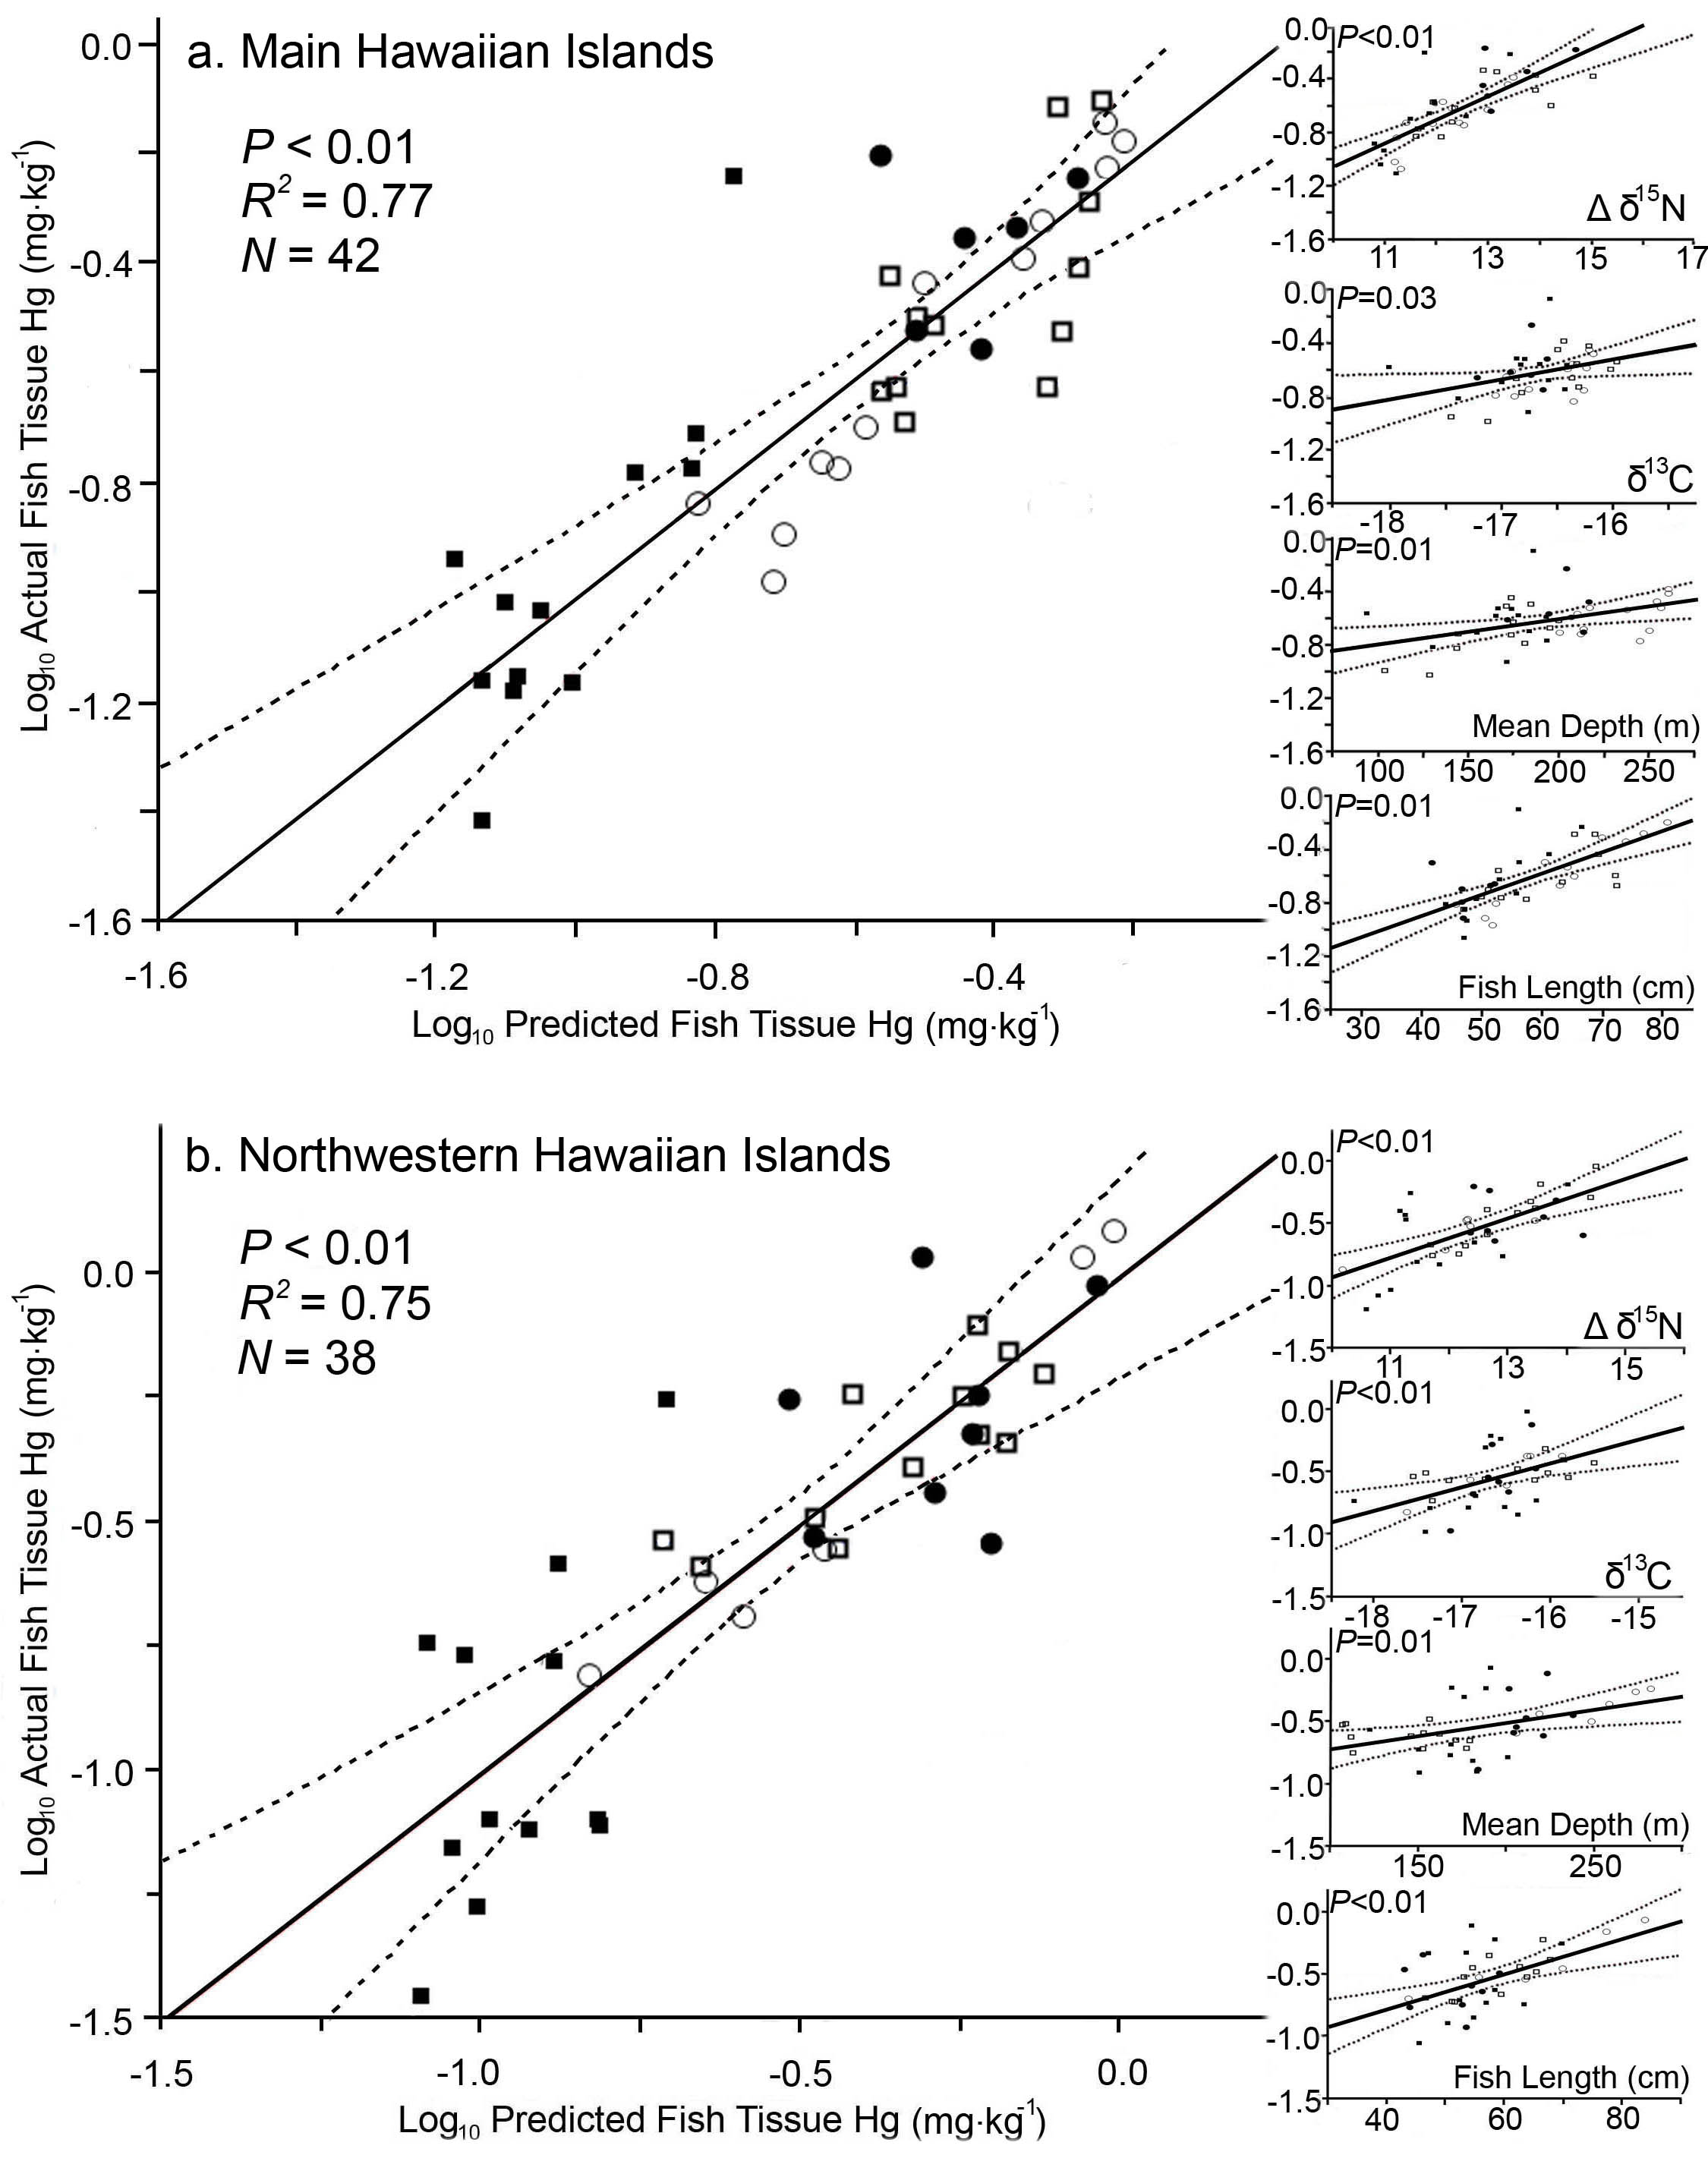 Freshwater fish mercury - The Relationship Between Fish Tissue Mercury In Several Deeper Water Bottomfish And Several Explanatory Factors From The A Main Hawaiian Islands